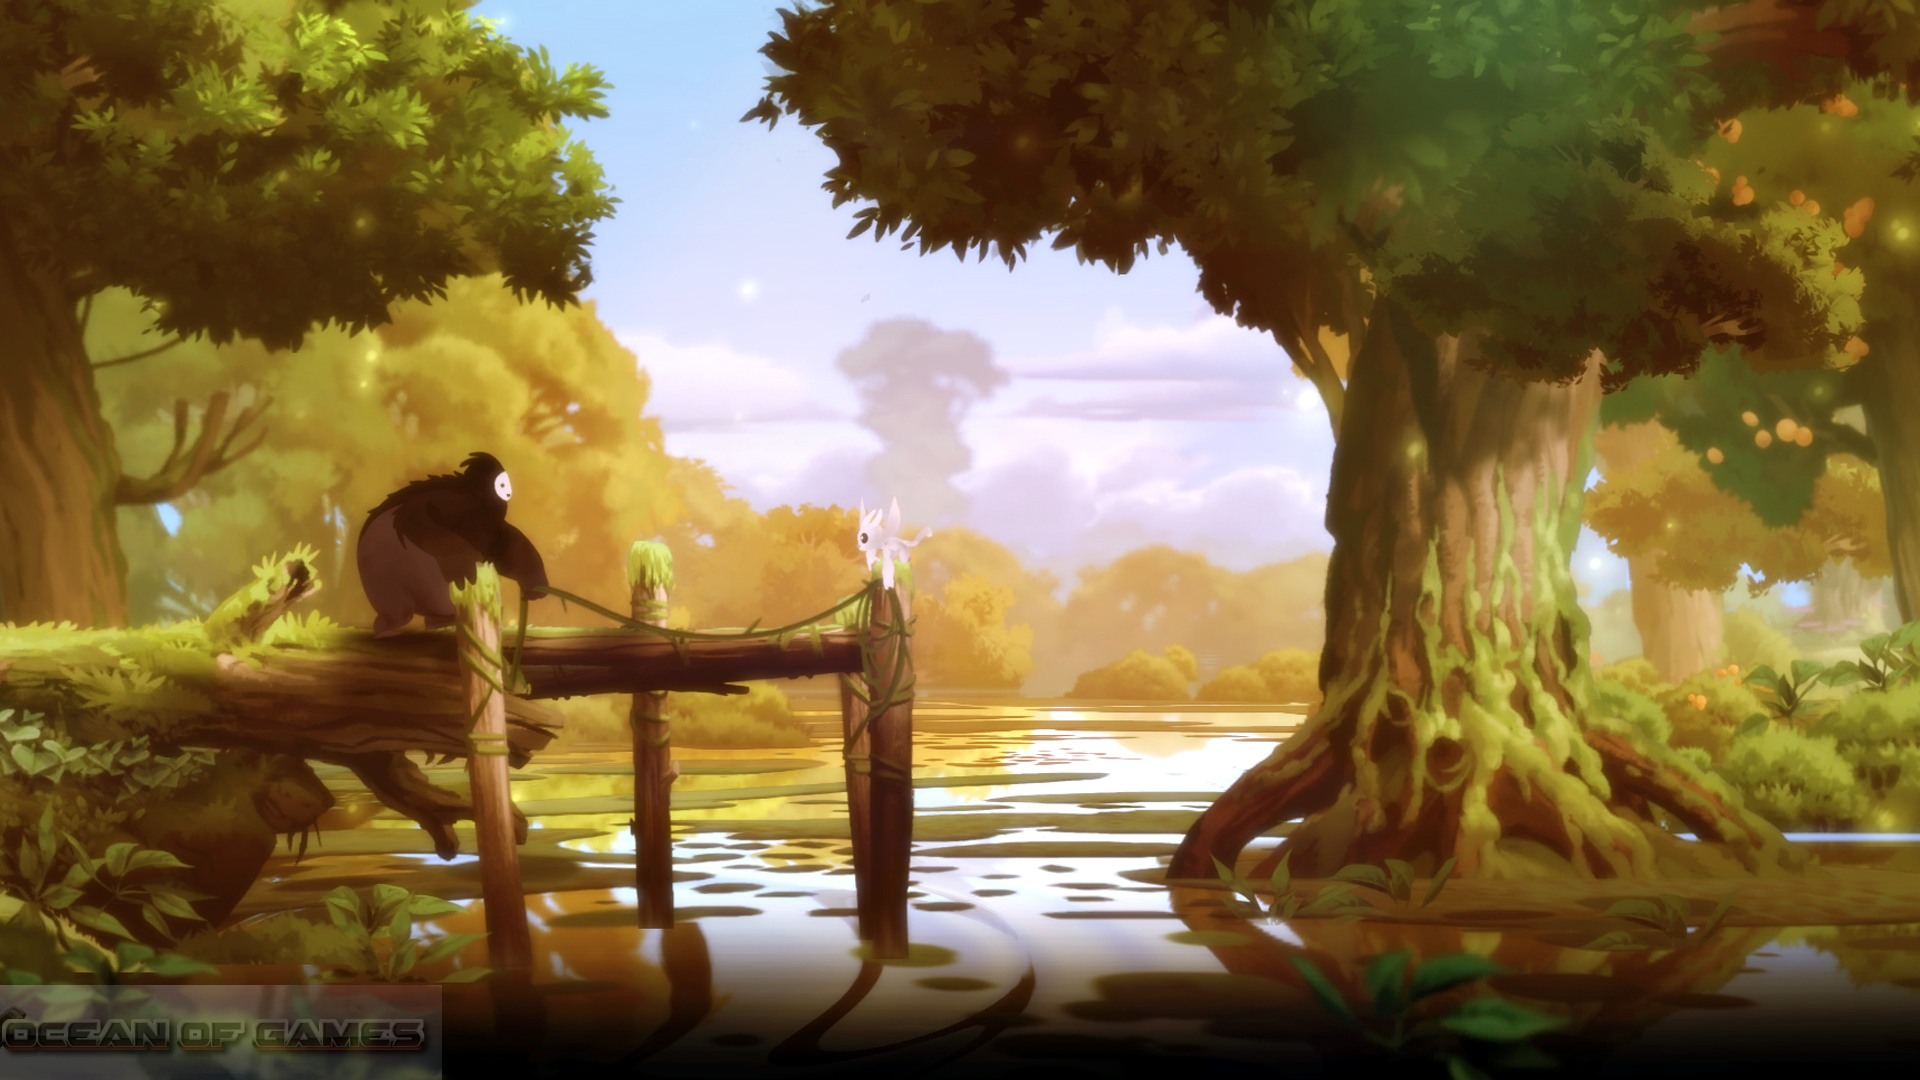 http://chezmarko.fr/wp-content/uploads/2015/03/ori-and-the-blind-forest-setup-free-download.jpg